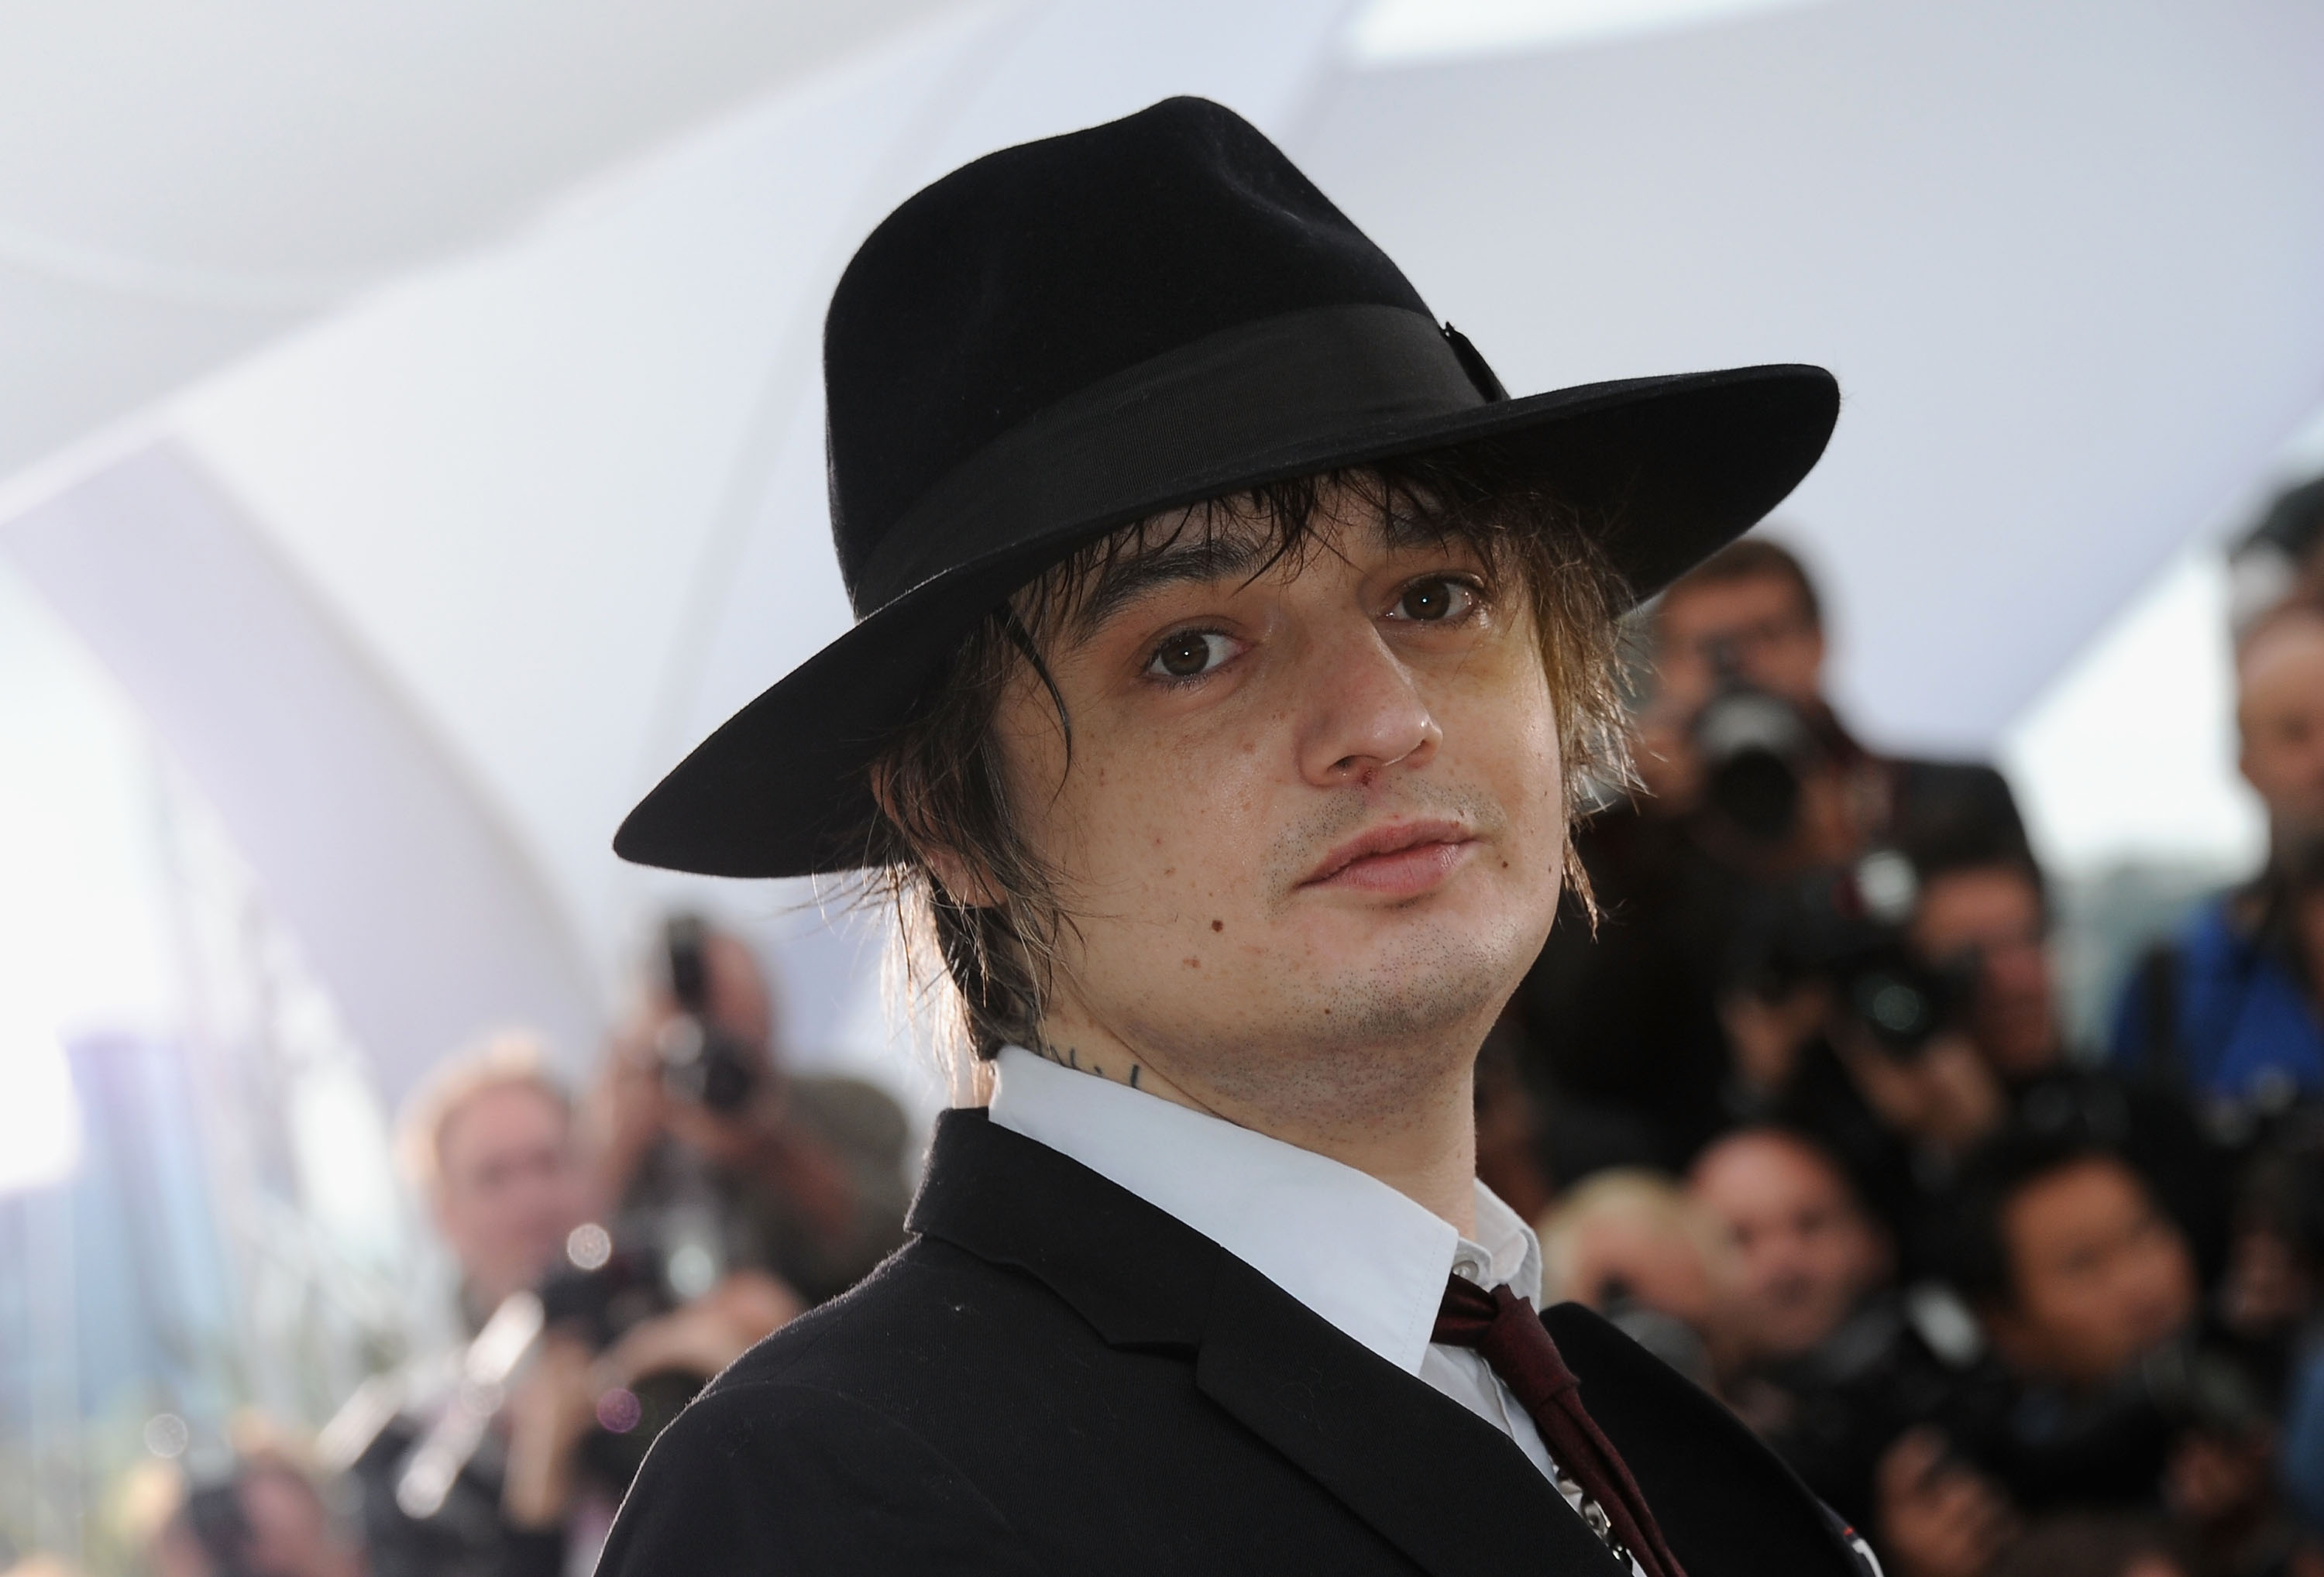 Pete Doherty was 'decked' by Swervedriver singer Adam Franklin during a Hong Kong scuffle